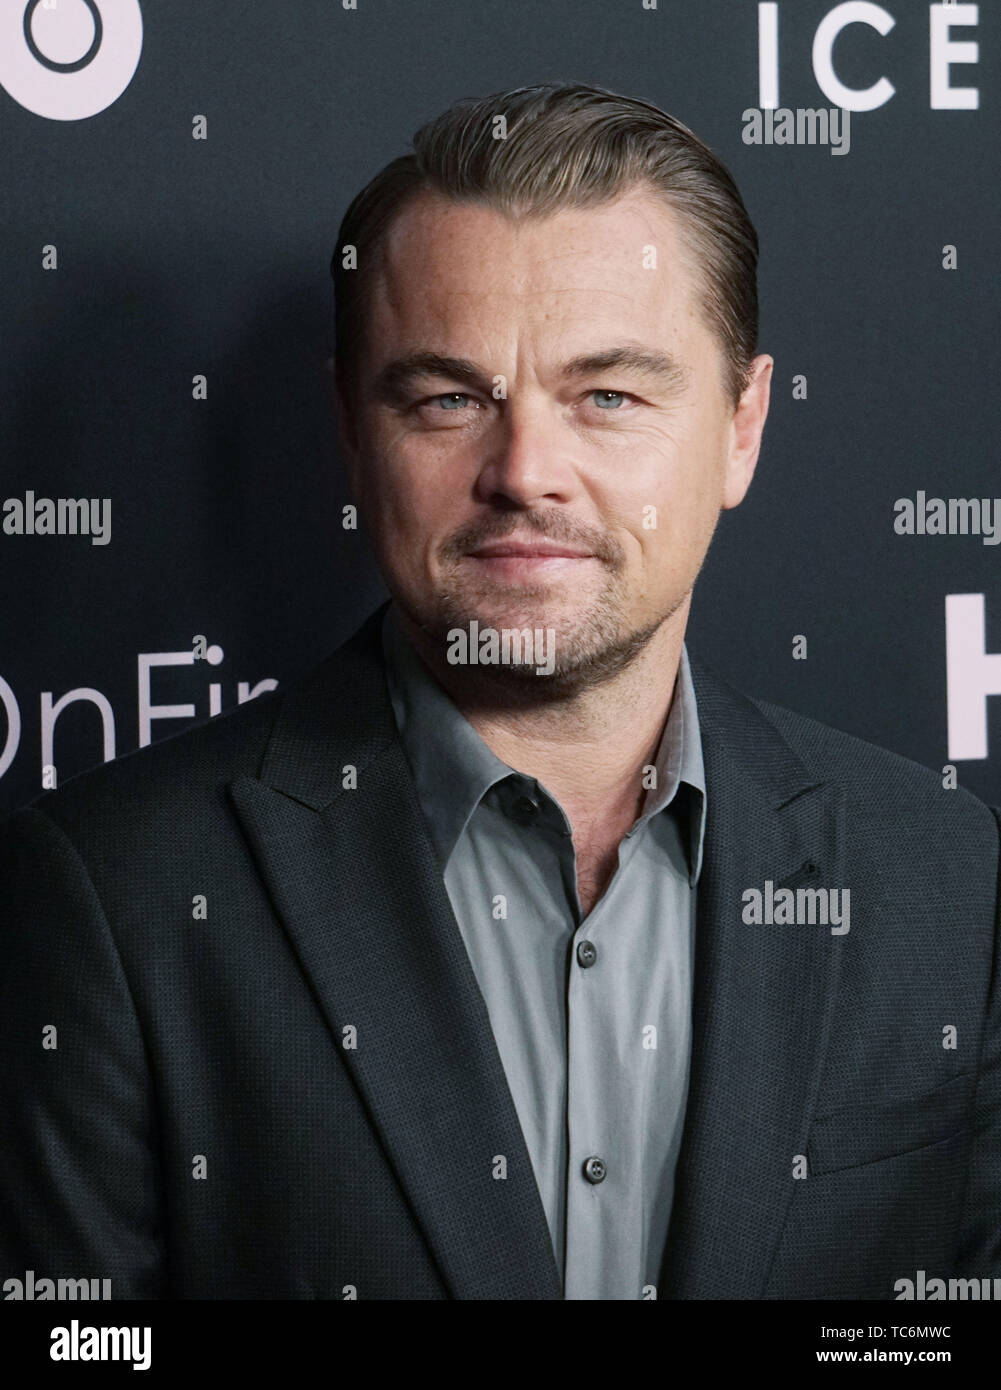 Los Angeles, USA. 05th June, 2019. Leonardo DiCaprio 001 arrives at the LA Premiere Of HBO's 'Ice On Fire' at LACMA on June 05, 2019 in Los Angeles, California. Credit: Tsuni/USA/Alamy Live News - Stock Image